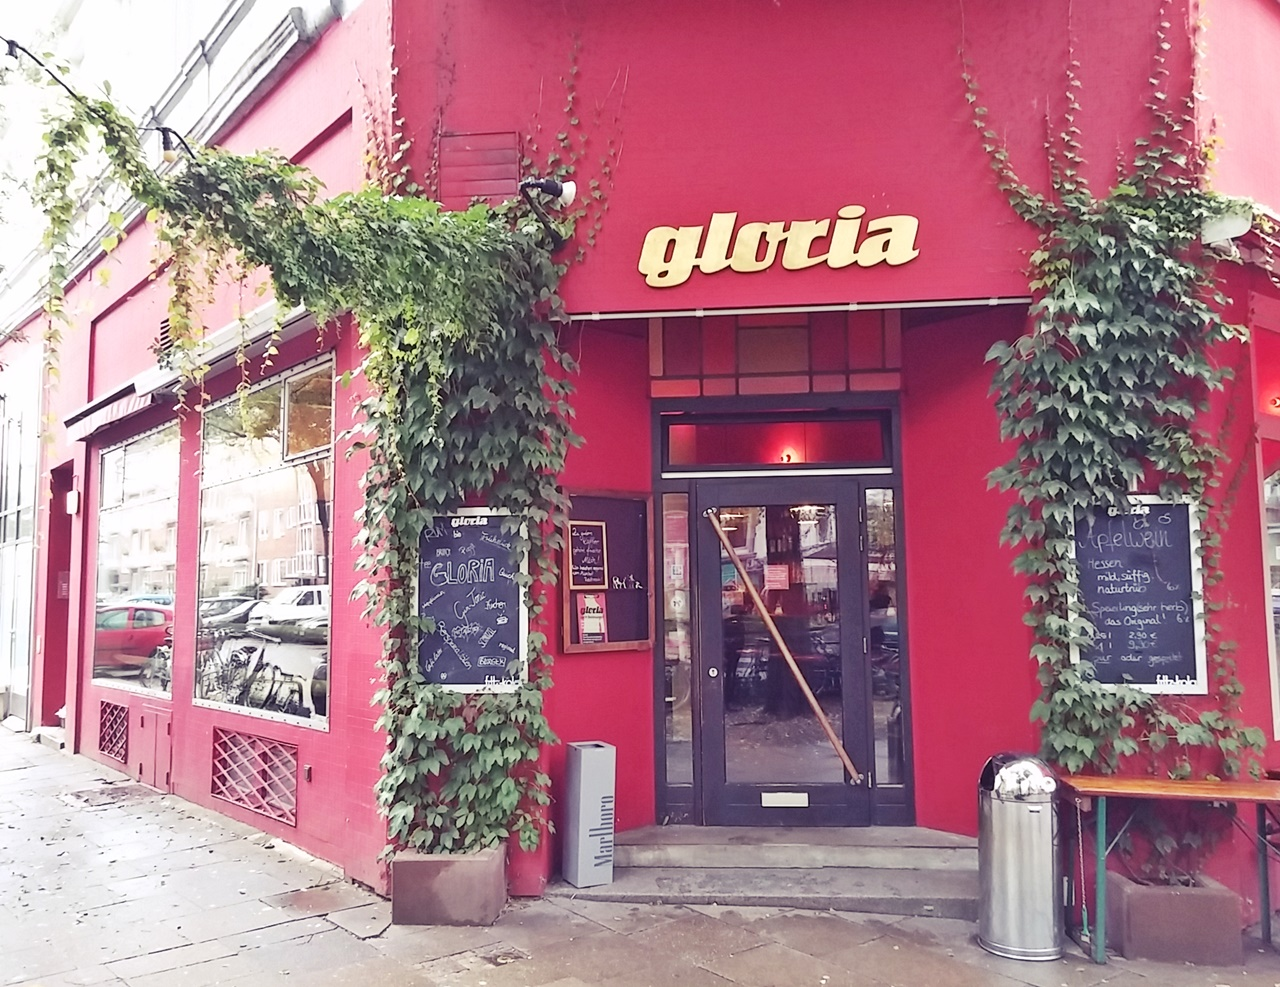 Cafébar gloria in der Bellealliancestraße